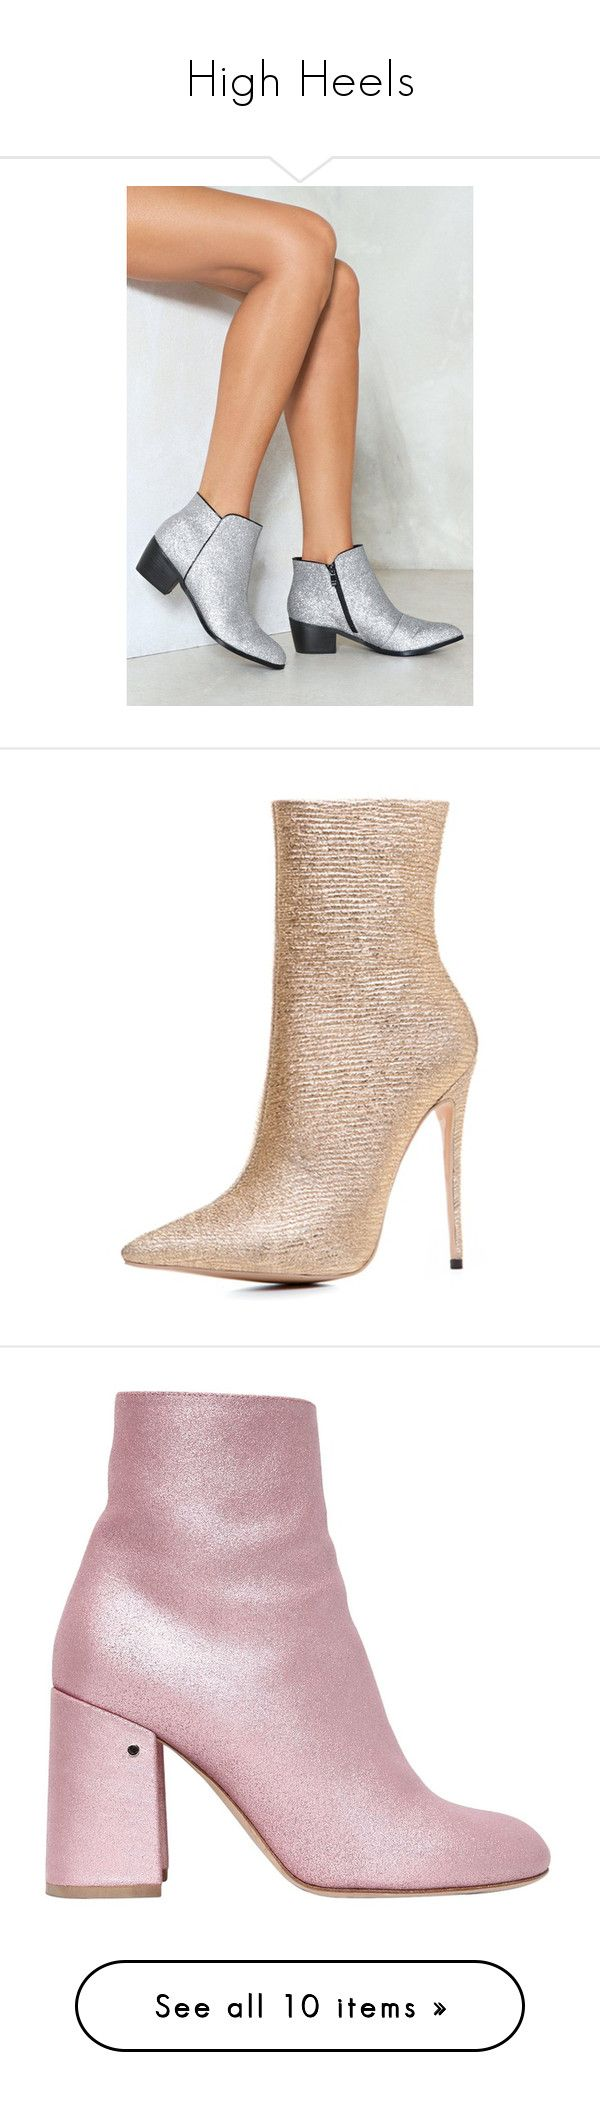 """""""High Heels"""" by eblessid ❤ liked on Polyvore featuring shoes, boots, ankle booties, silver, glitter ankle boots, zip boots, zipper ankle boots, zipper boots, almond toe ankle boots and glitter shoes"""